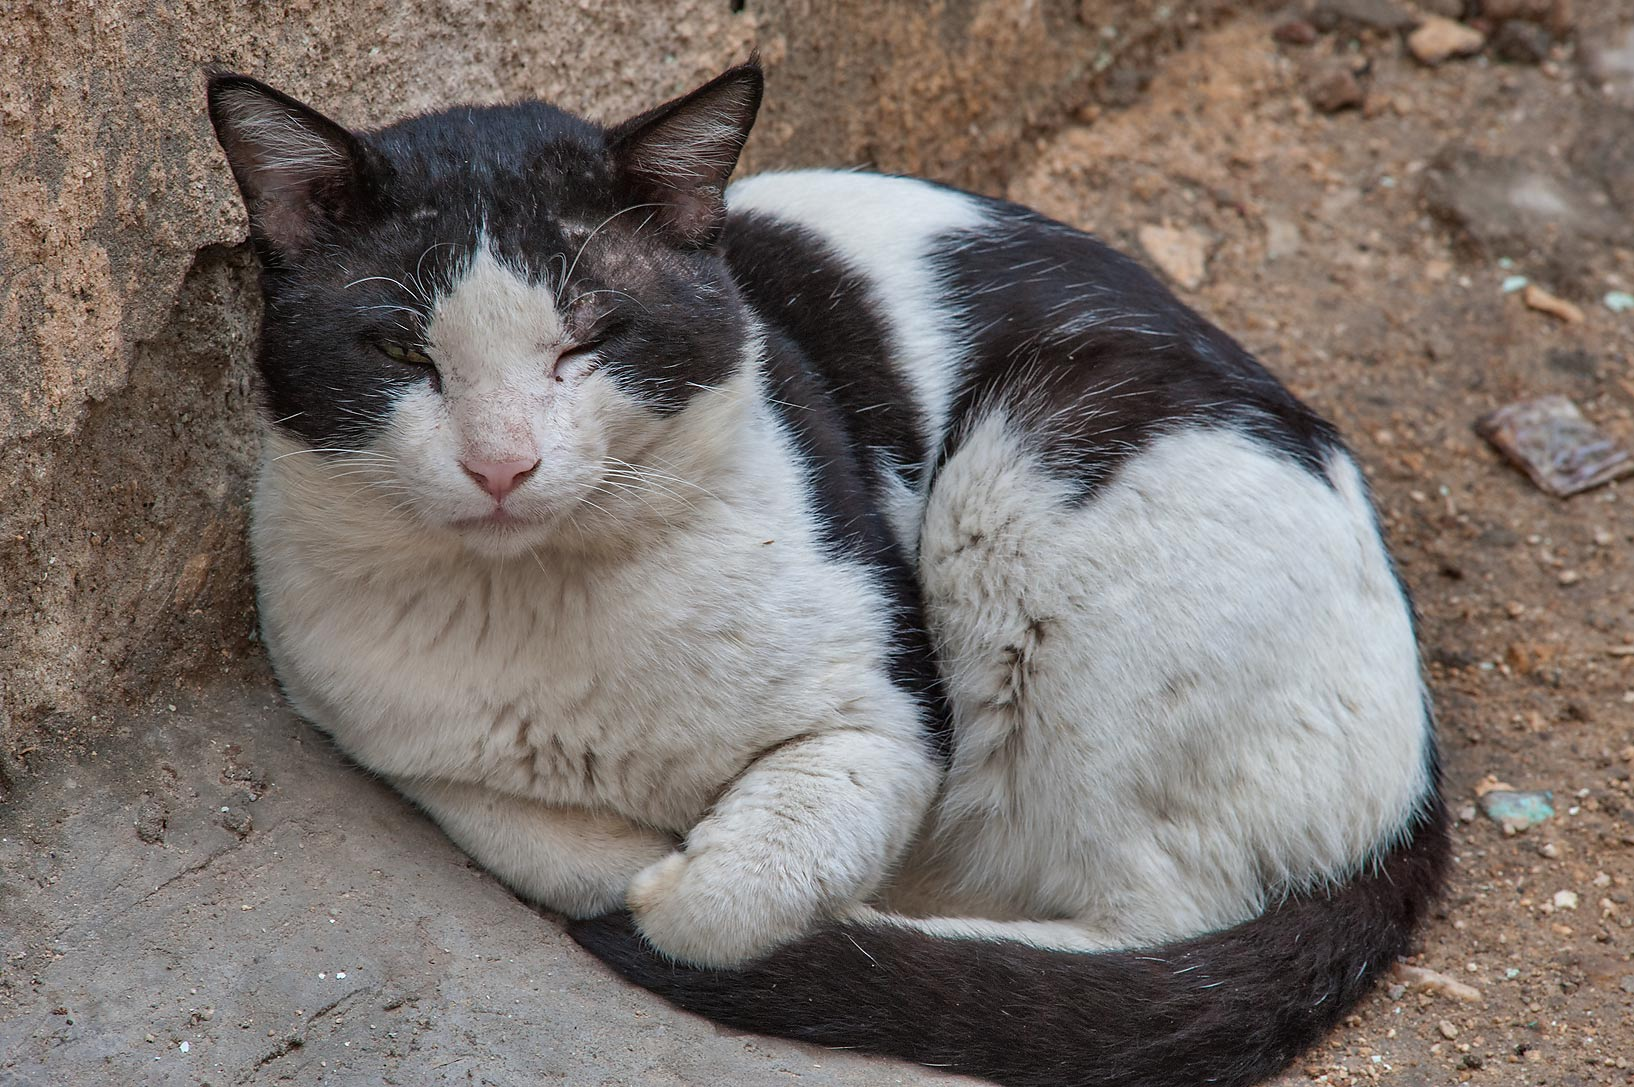 Sleeping black and white cat near Abdullah Bin Thani St. in Musheirib area. Doha, Qatar